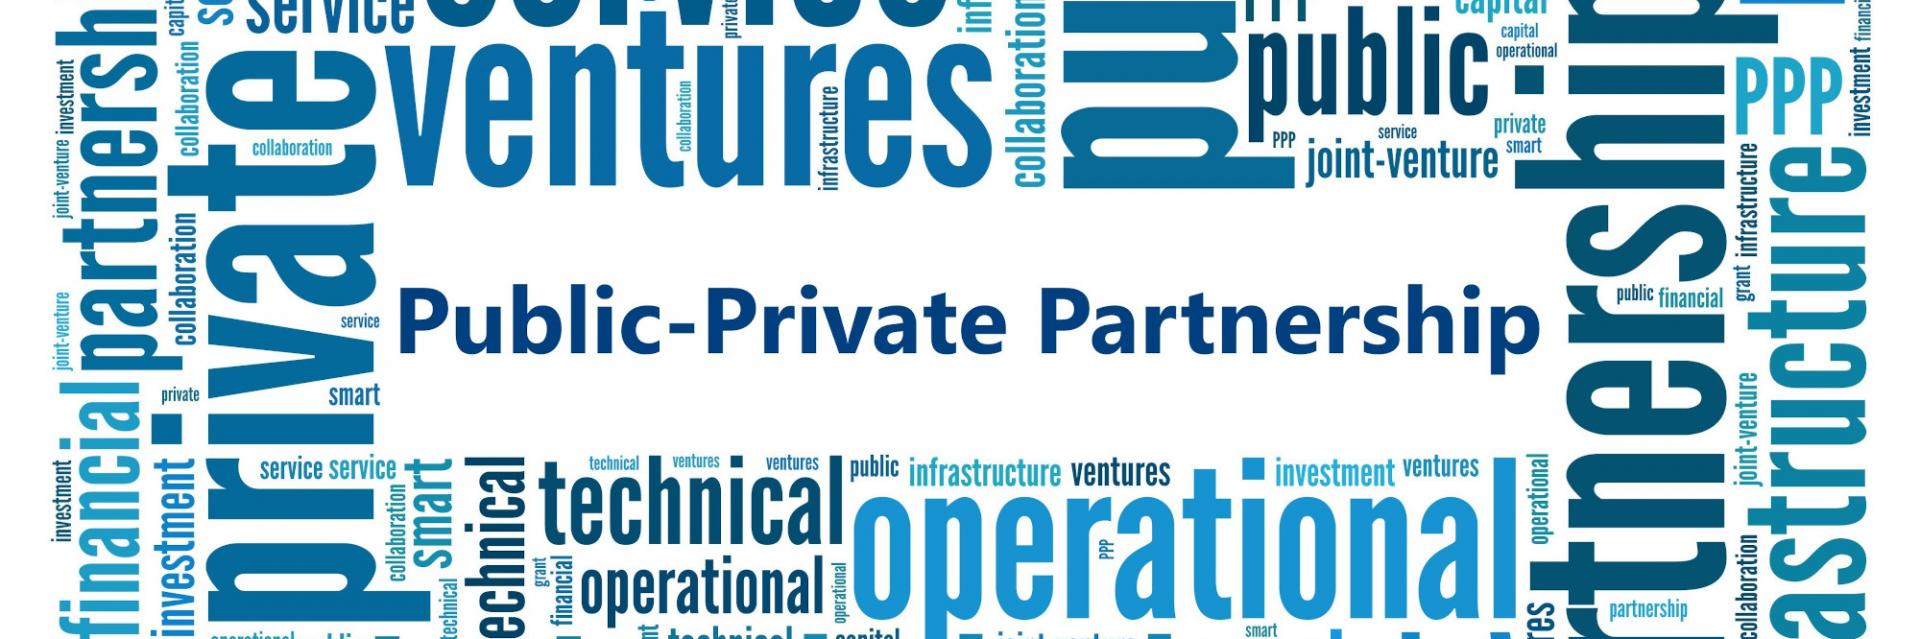 Public-private partnerships crucial to foster digital development of industry and trade in southern Africa